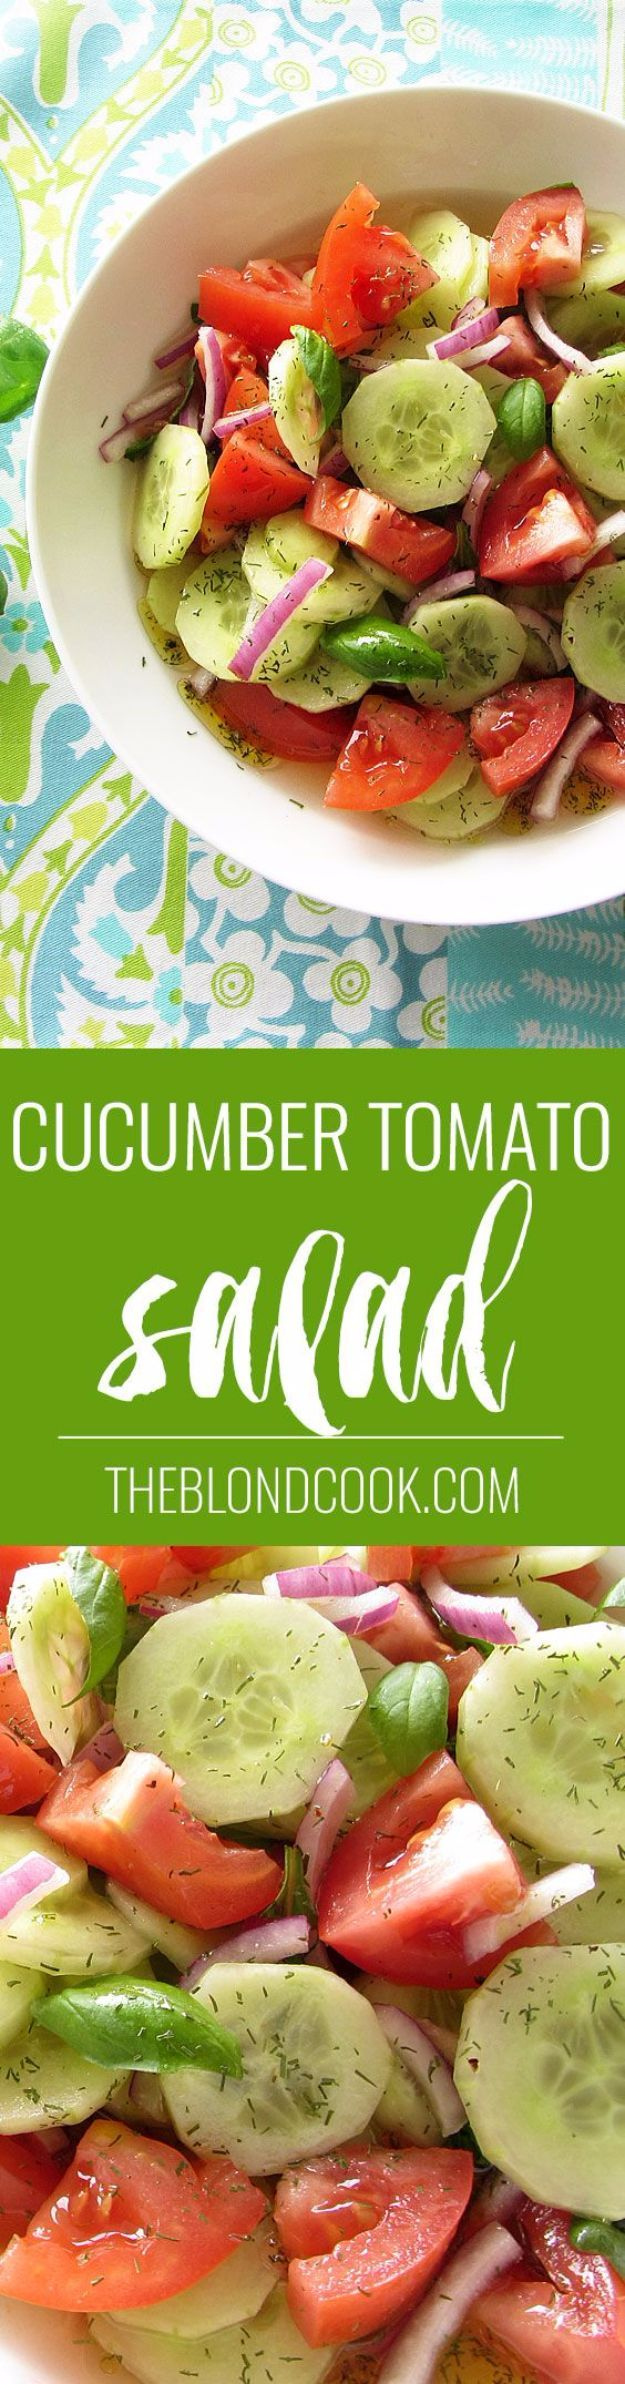 Best Easter Dinner Recipes - Cucumber Tomato Salad - Easy Recipe Ideas for Easter Dinners and Holiday Meals for Families - Side Dishes, Slow Cooker Recipe Tutorials, Main Courses, Traditional Meat, Vegetable and Dessert Ideas - Desserts, Pies, Cakes, Ham and Beef, Lamb - DIY Projects and Crafts by DIY JOY diyjoy.com/...